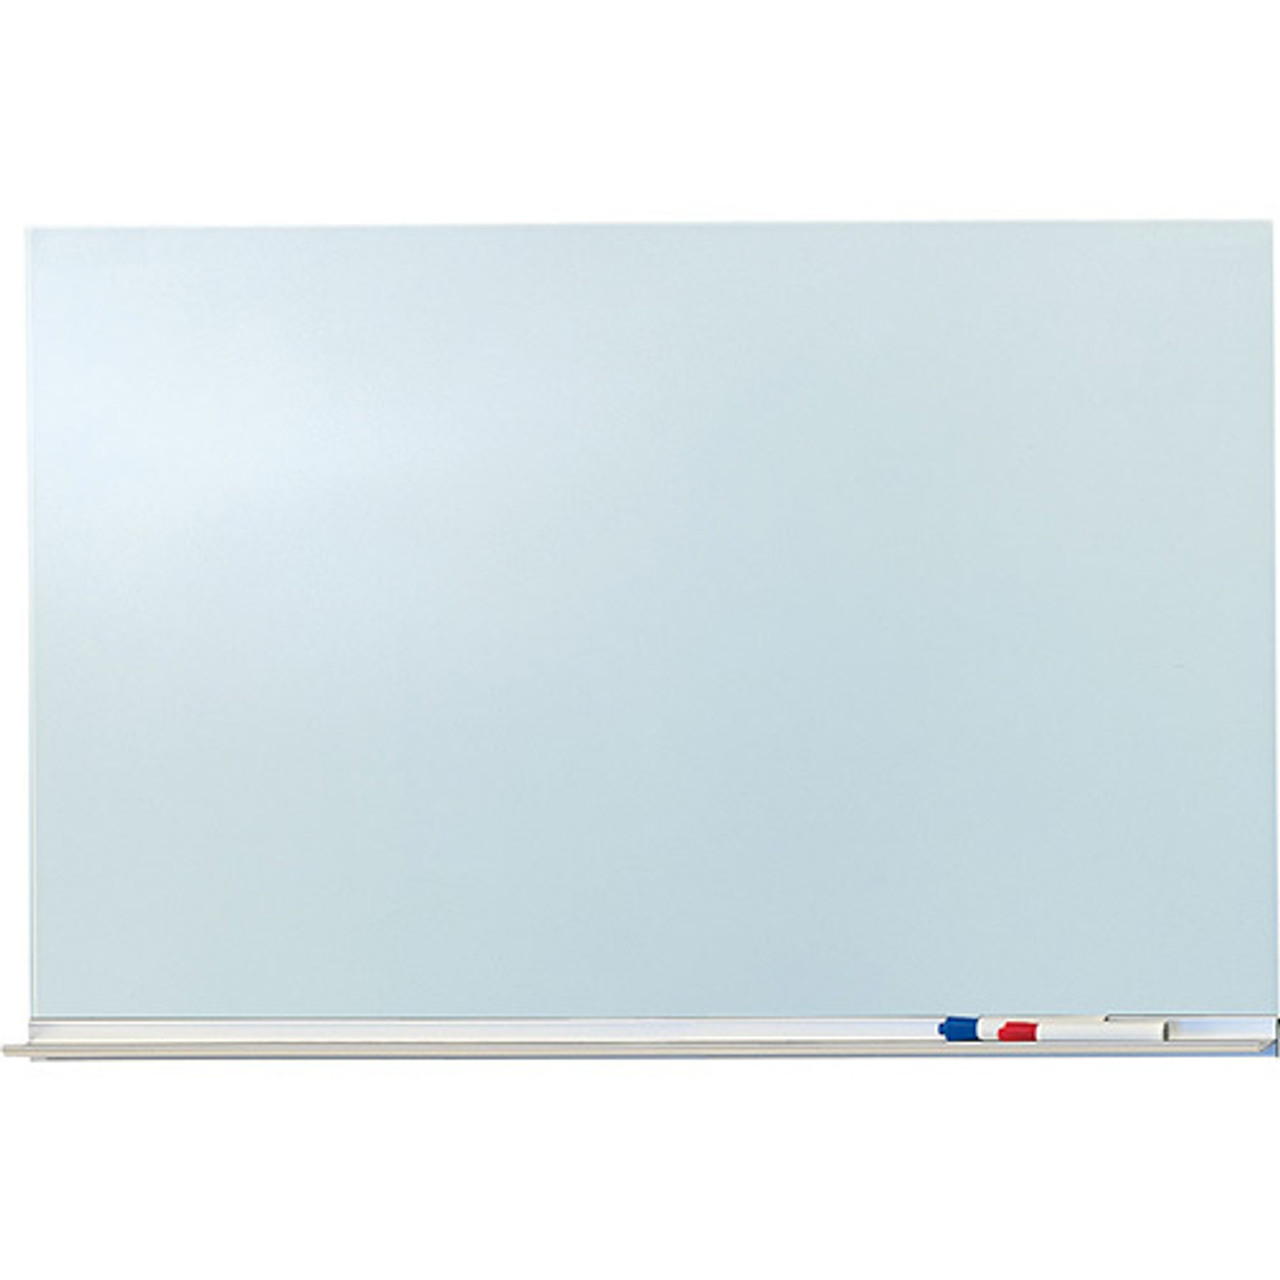 Peter Pepper GB Clear Glass Dry Erase Boards